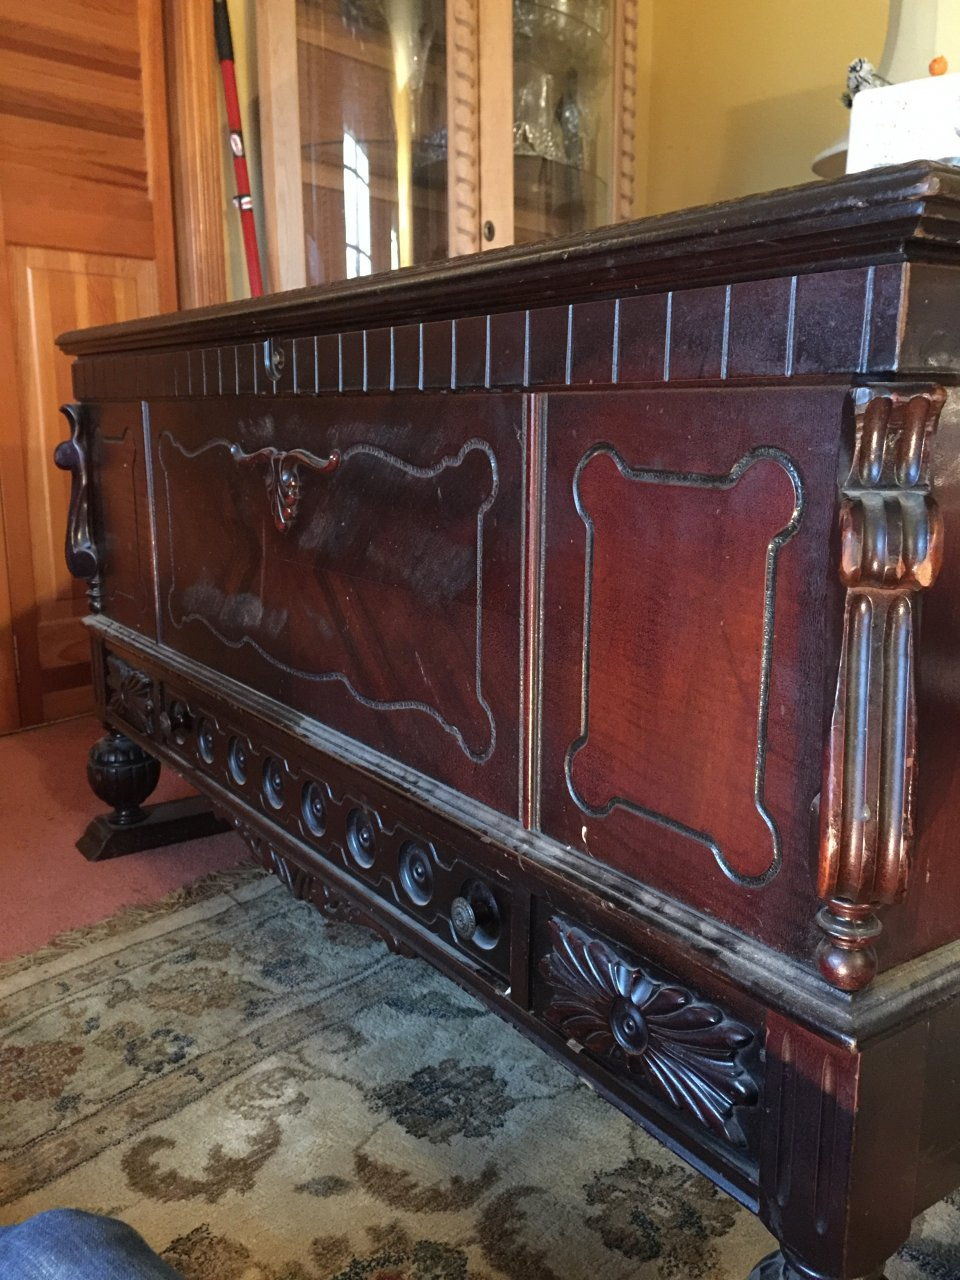 Trying To Find The Value Of A 1927 Cavalier Cedar Chest